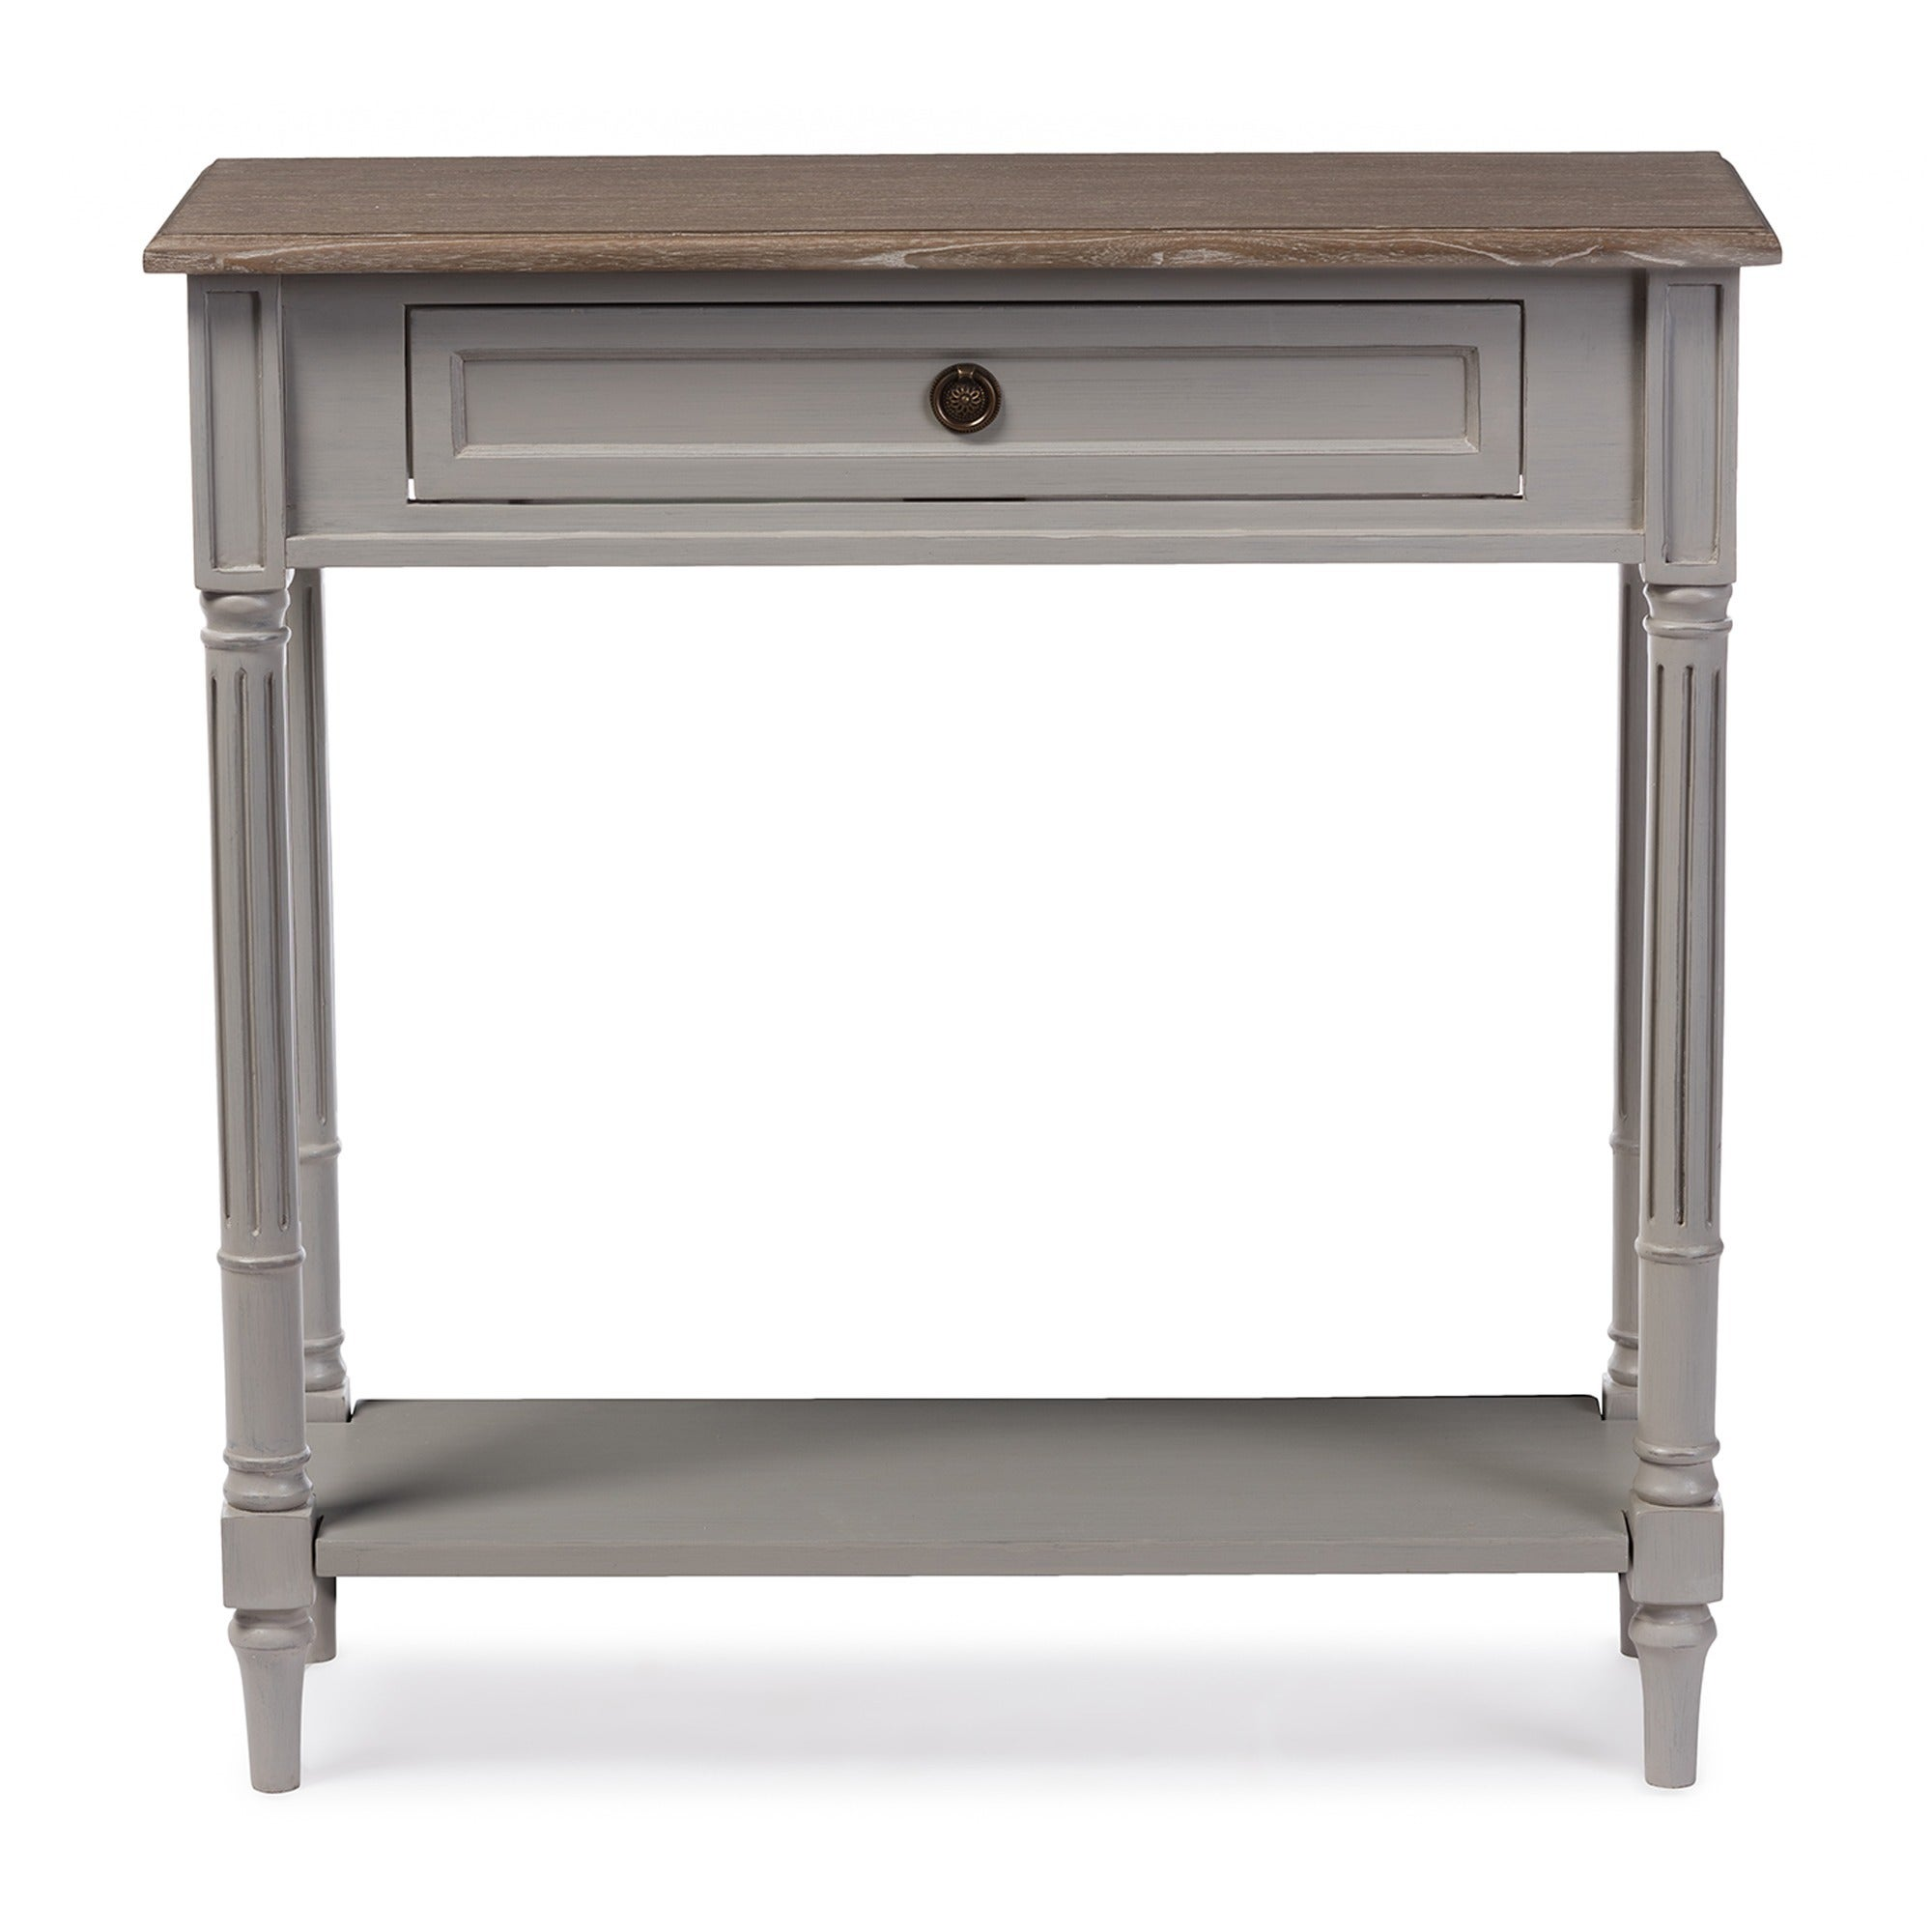 Charmant Shop Baxton Studio Edouard French Provincial Distressed Console Table    Free Shipping Today   Overstock.com   10838024